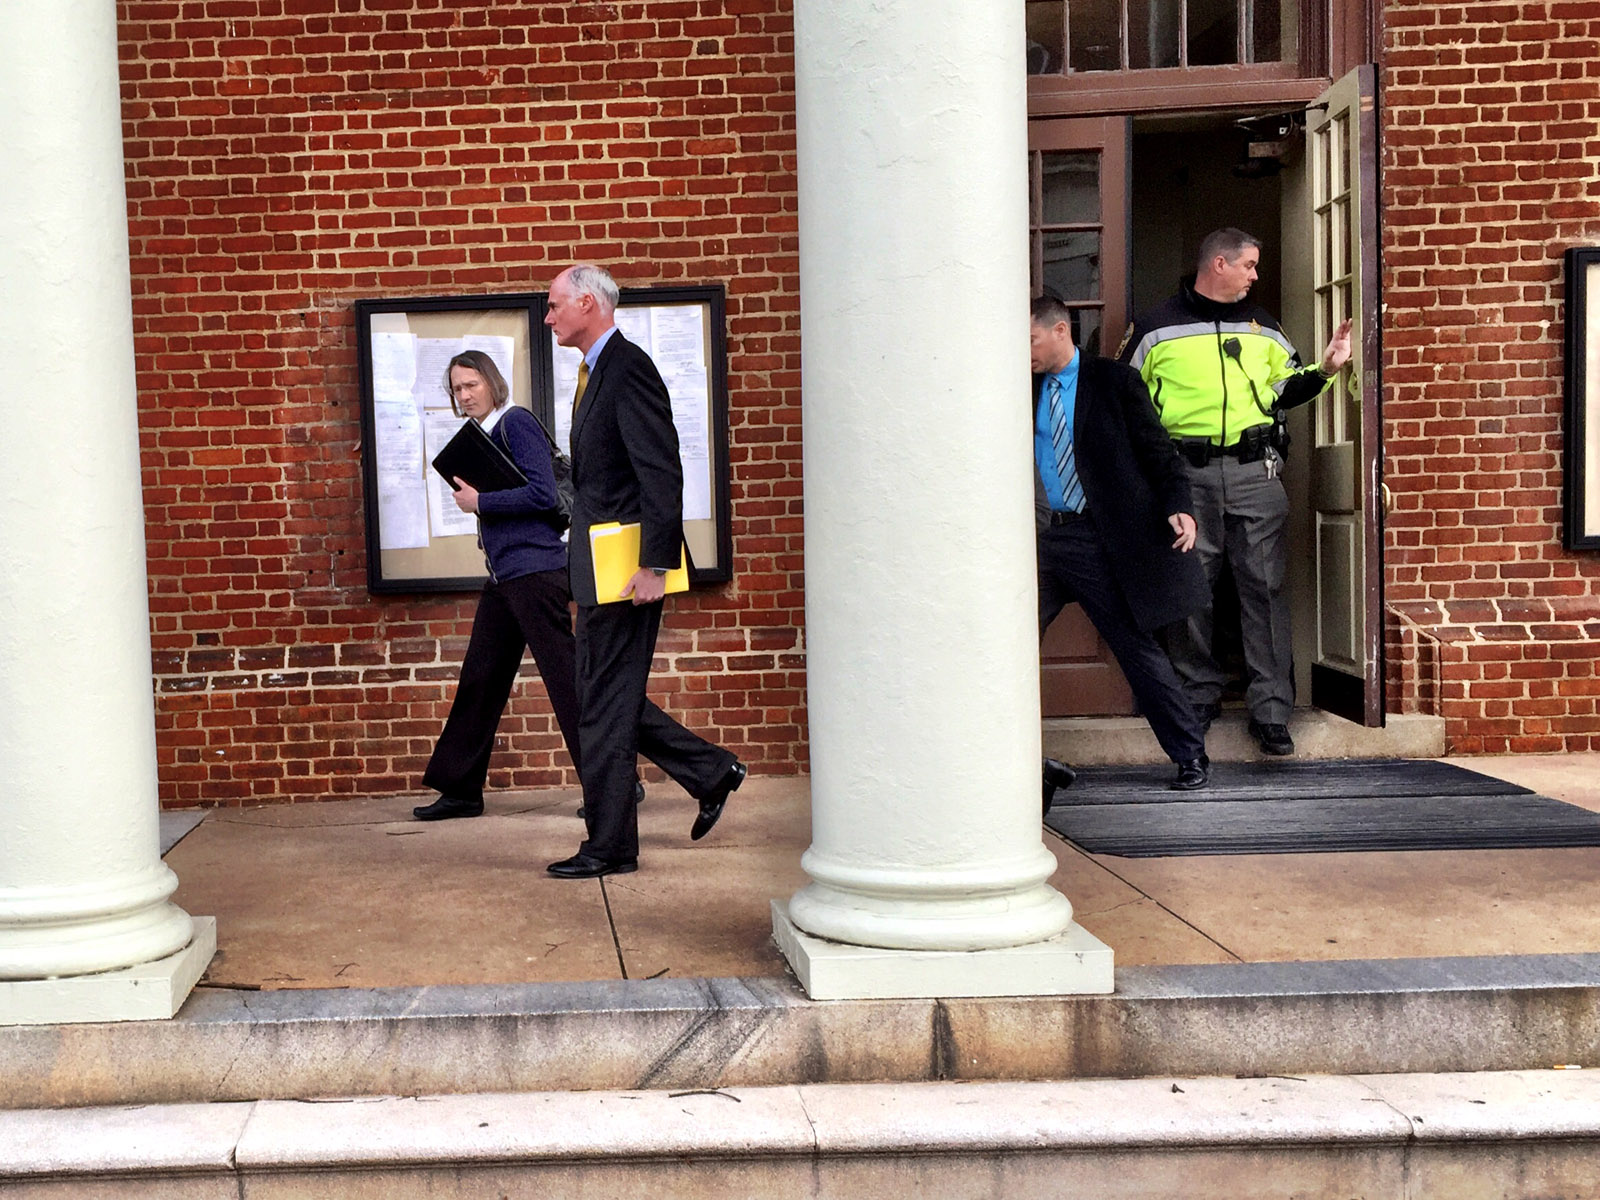 Judge rejects motion to exclude evidence from Jesse Matthew's apartment